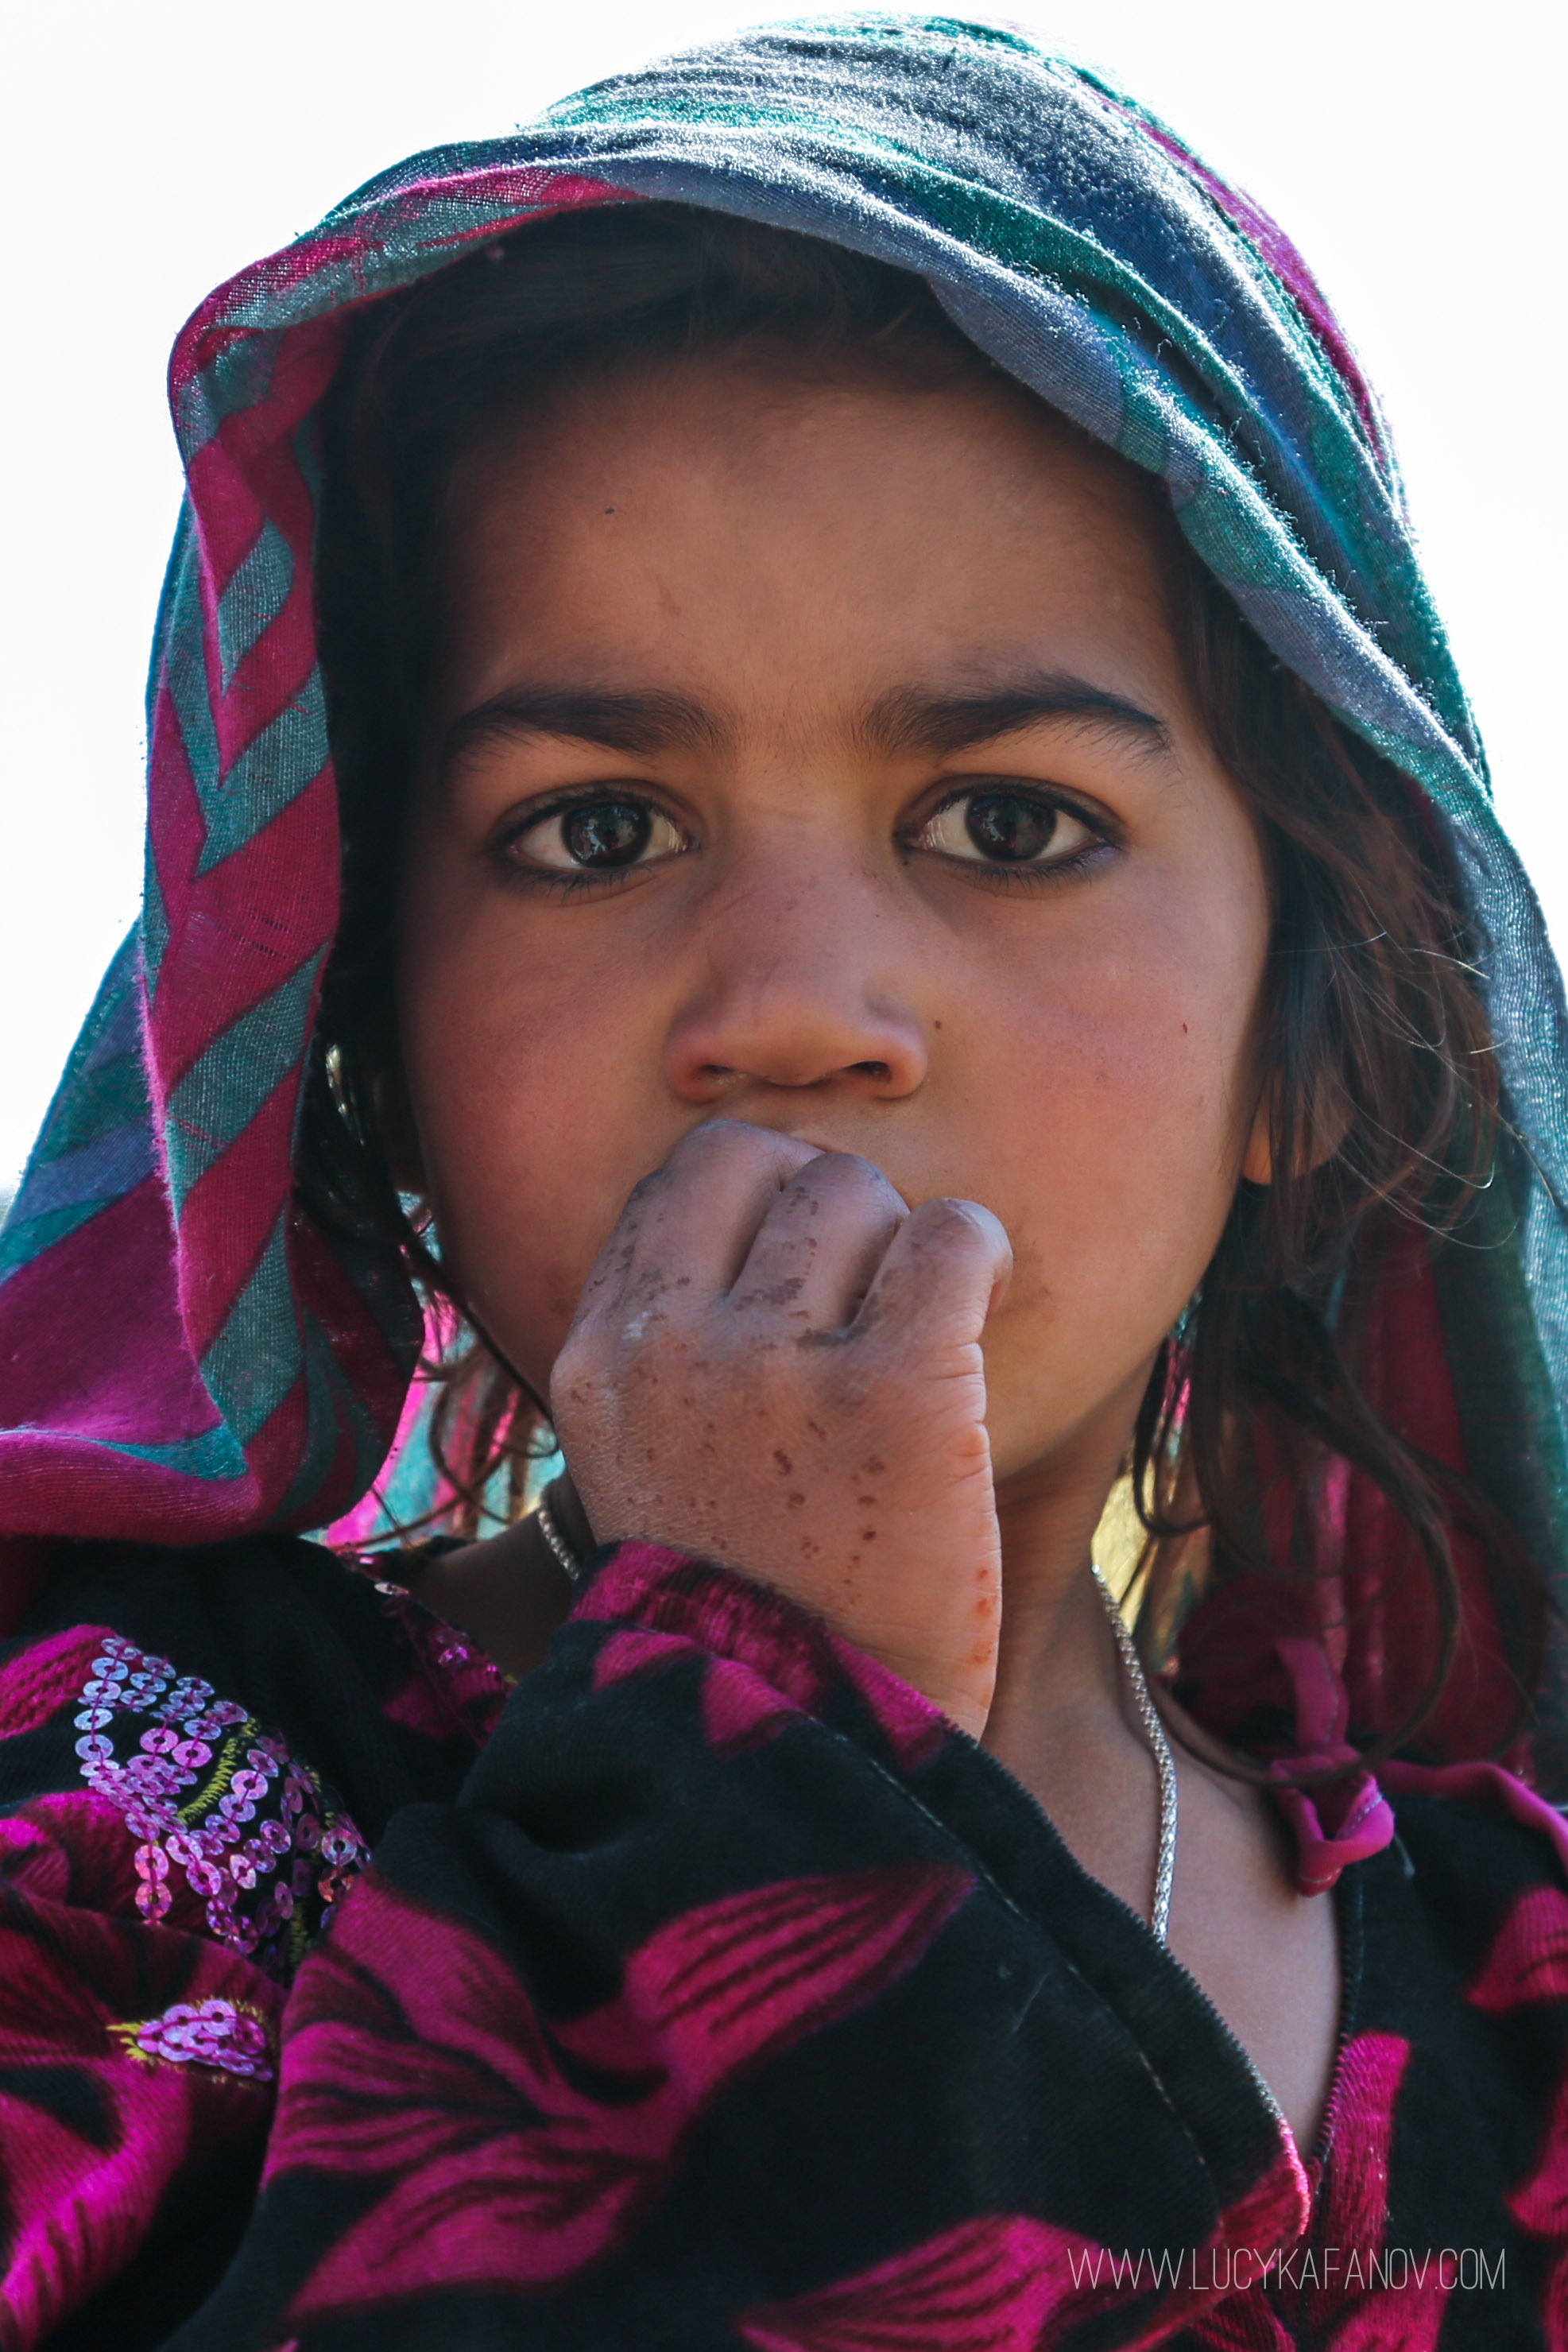 A young Afghan girl stares back into my camera.